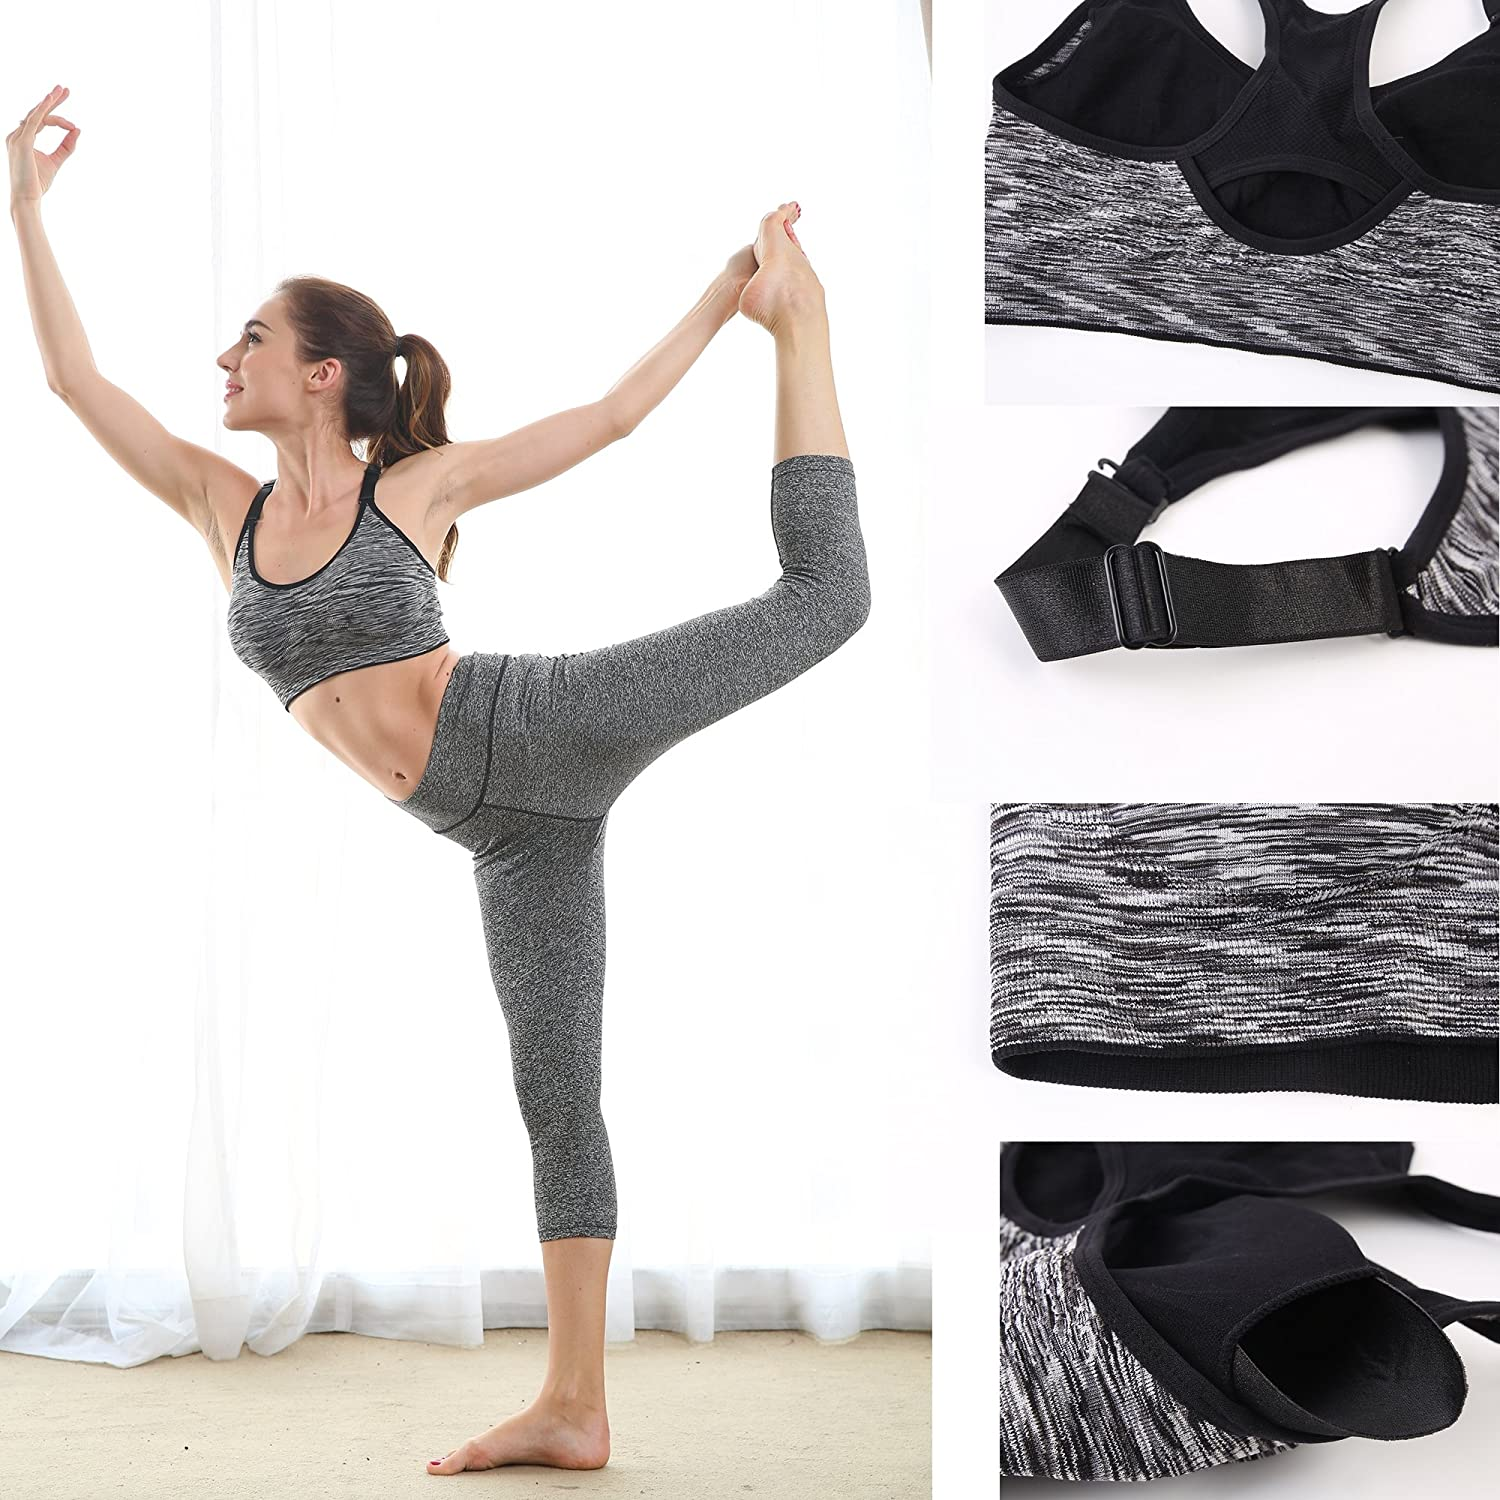 EMY Sports Bra 2 or 5 Pack Space Dye Seamless Stretchy Removable Pads for Yoga Running Fitness Workout